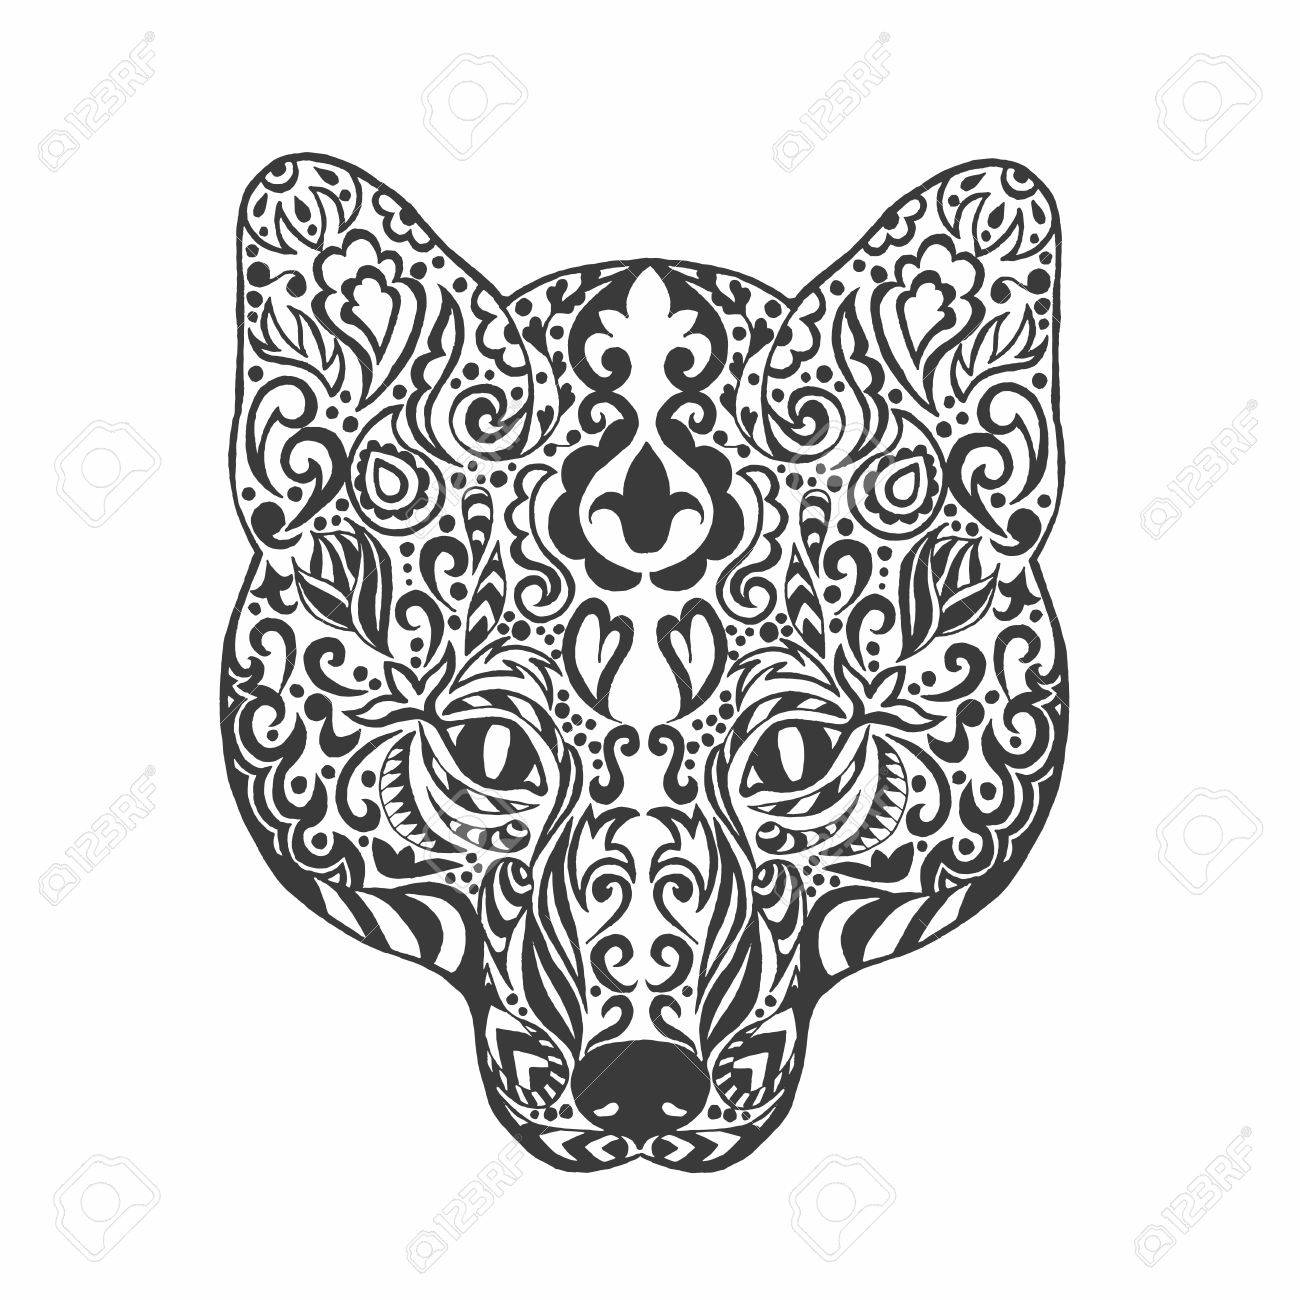 Fox Head Adult Antistress Coloring Page Black White Doodle Animal Ethnic Patterned